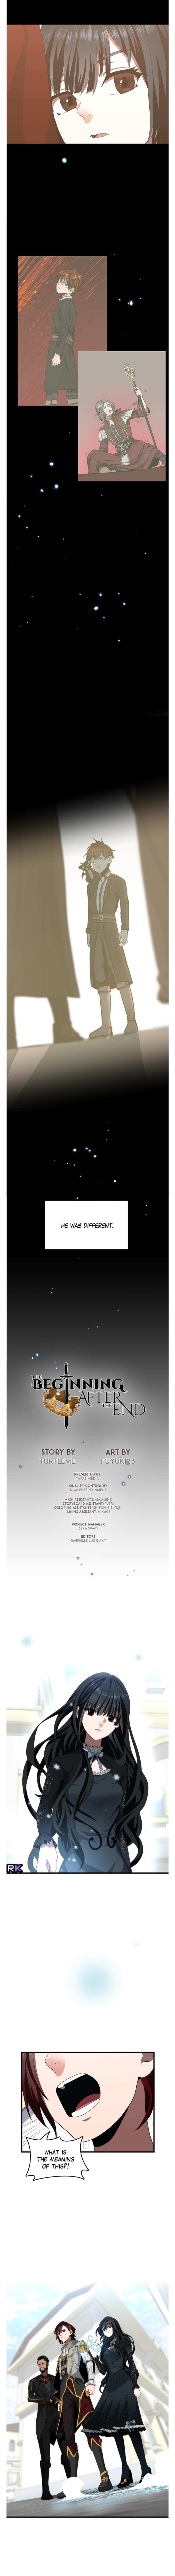 The Beginning After The End, Chapter 81 image 002